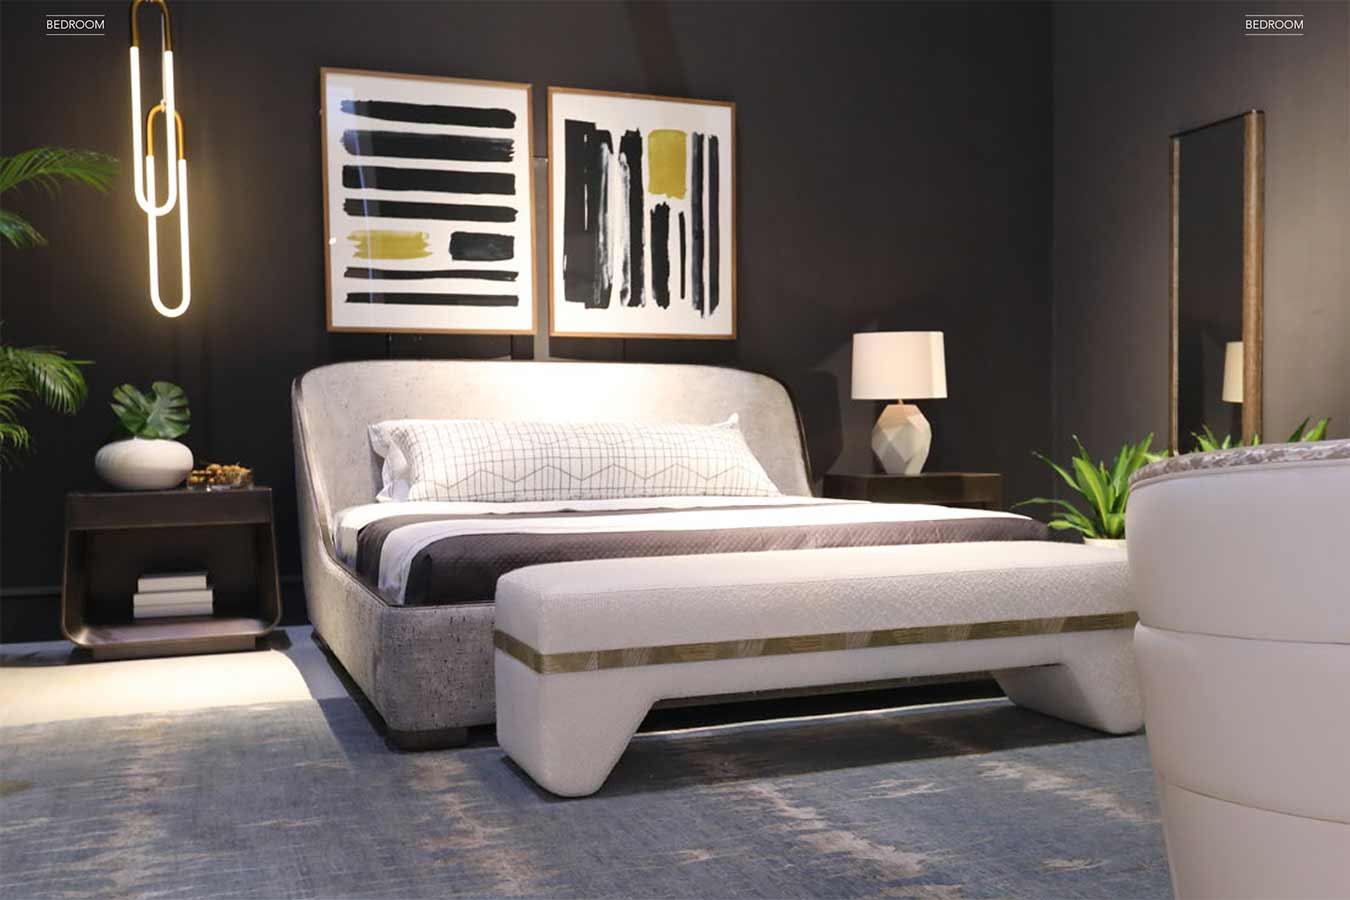 Xander Noori Bedroom | Contemporary Modern Luxury Exclusive Designer Handcrafted Furniture | Sandton Johannesburg